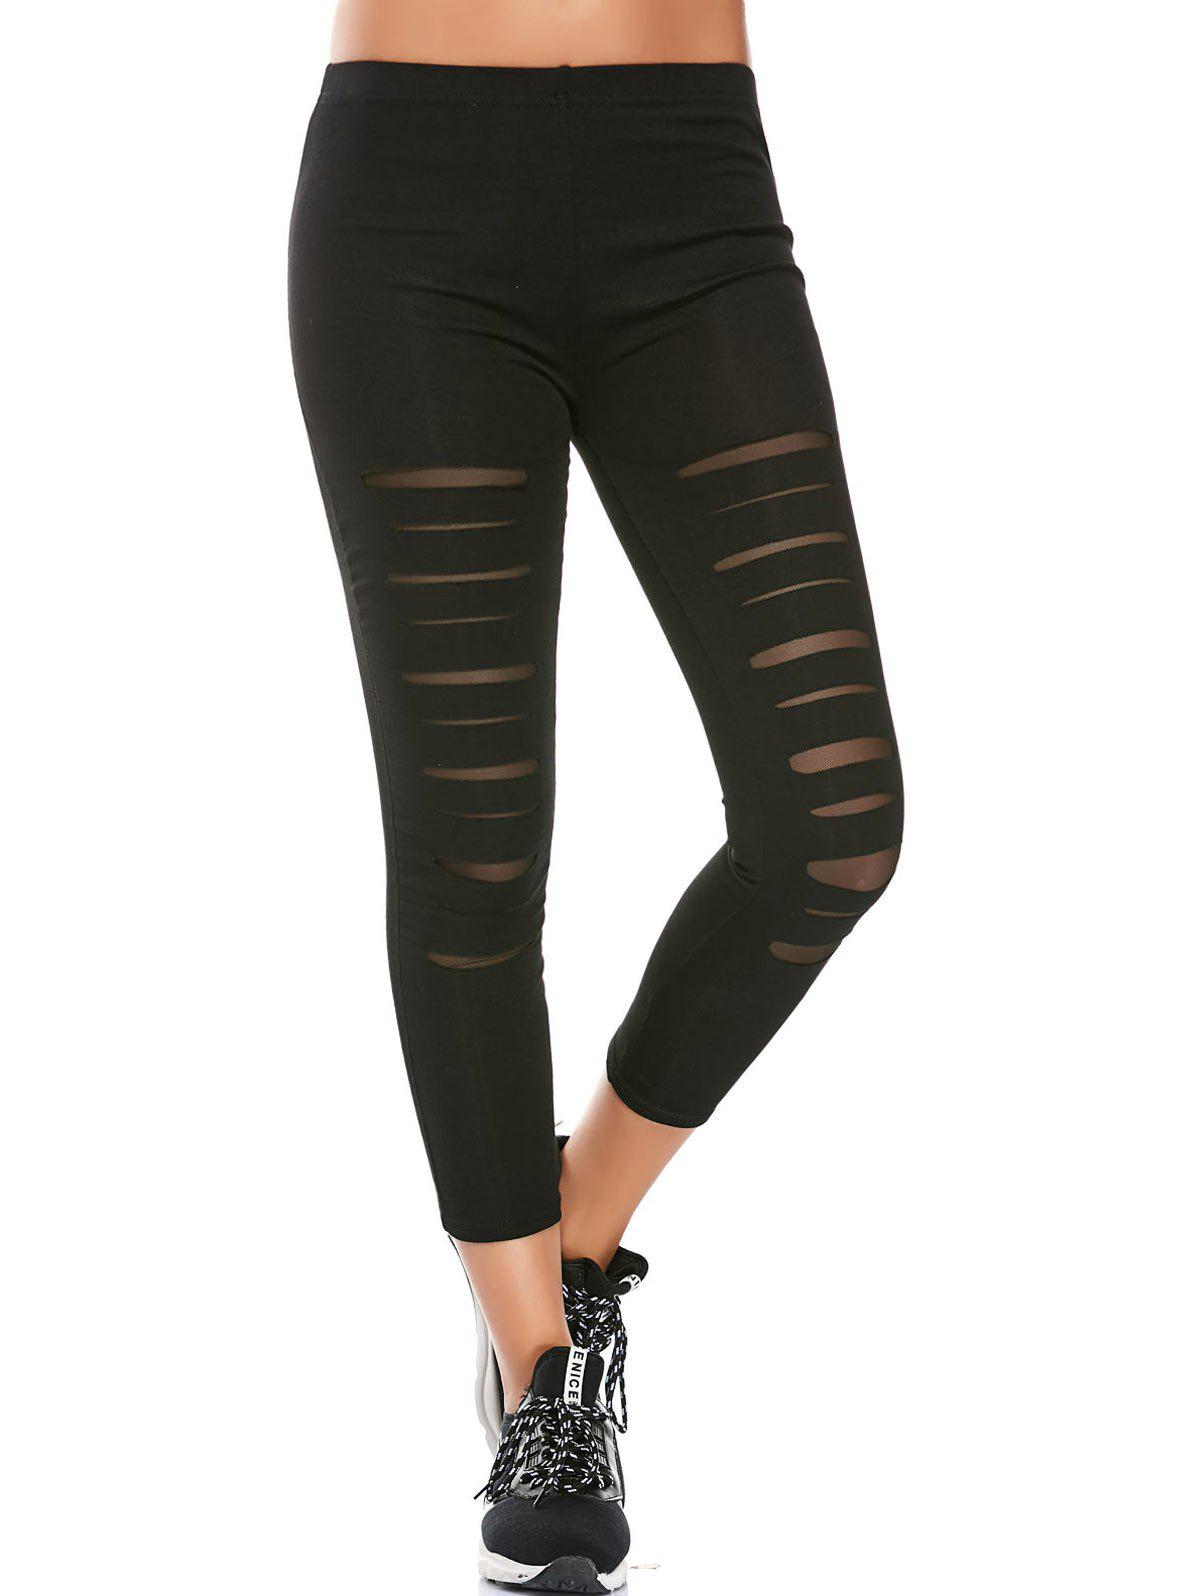 Sports Distressed Leggings With Mesh Fishnet Panel 212700701